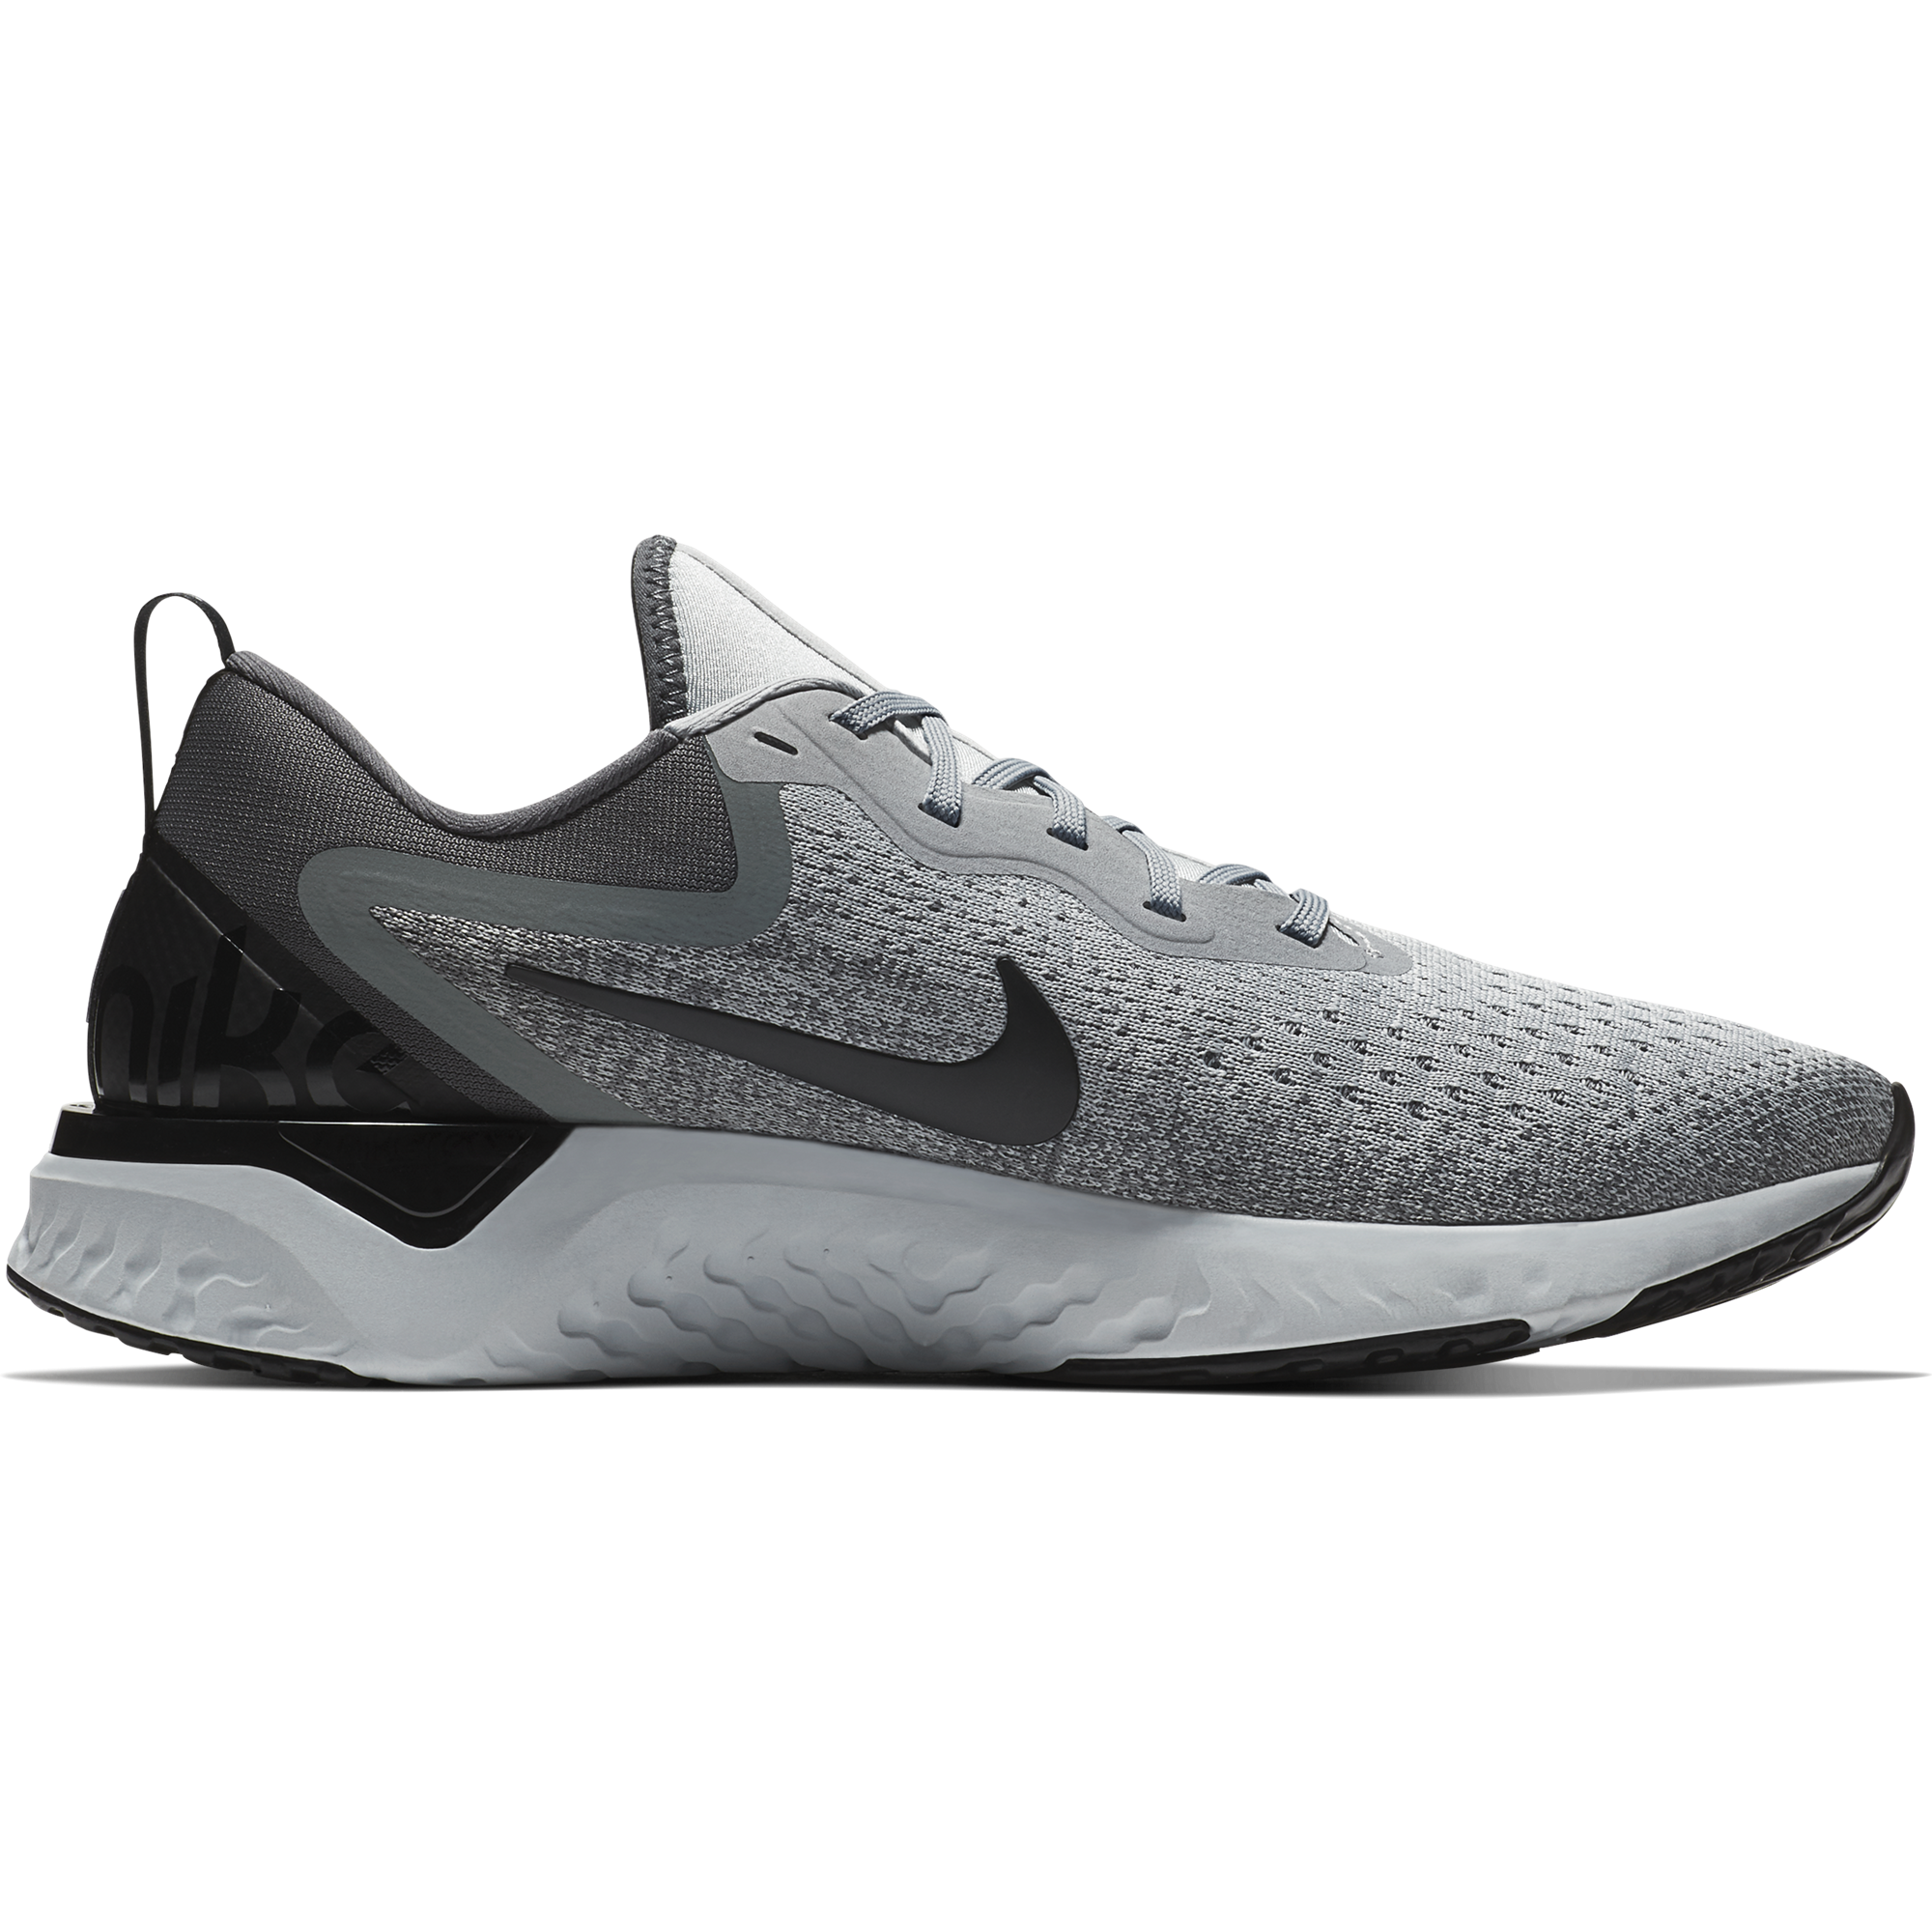 faadc944bdda1 Men s Odyssey React Running Shoe - Wolf Grey Black Dark Grey Pure Plat –  Gazelle Sports